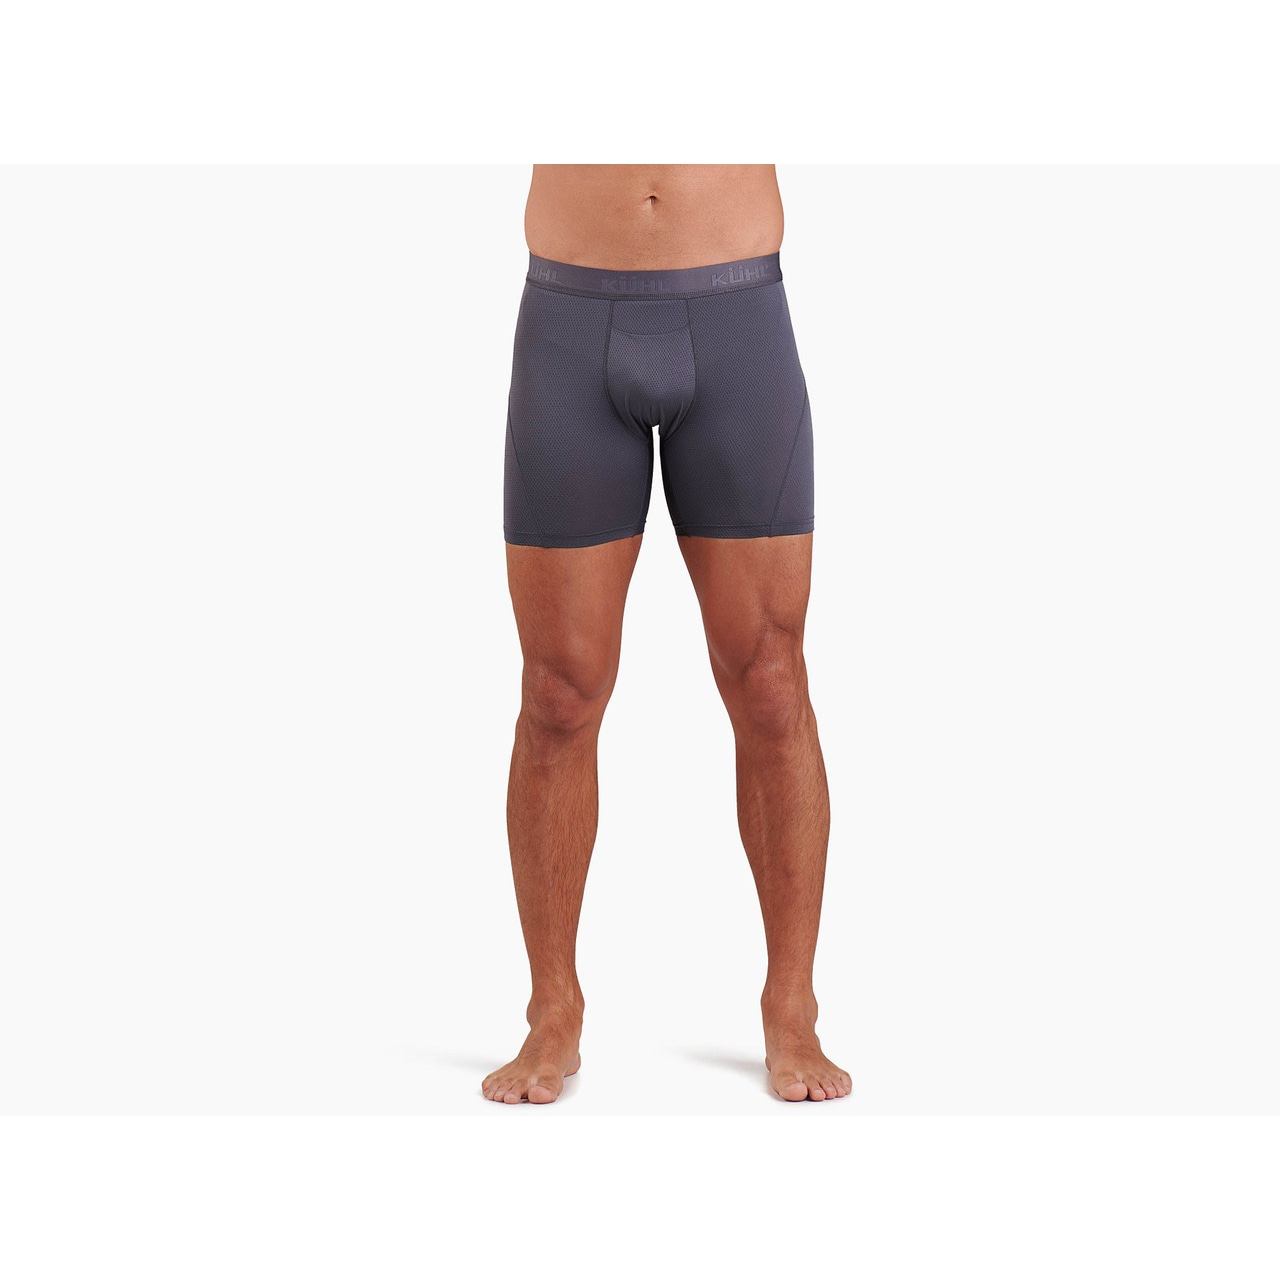 Kuhl Boxer Brief with Fly- Men's